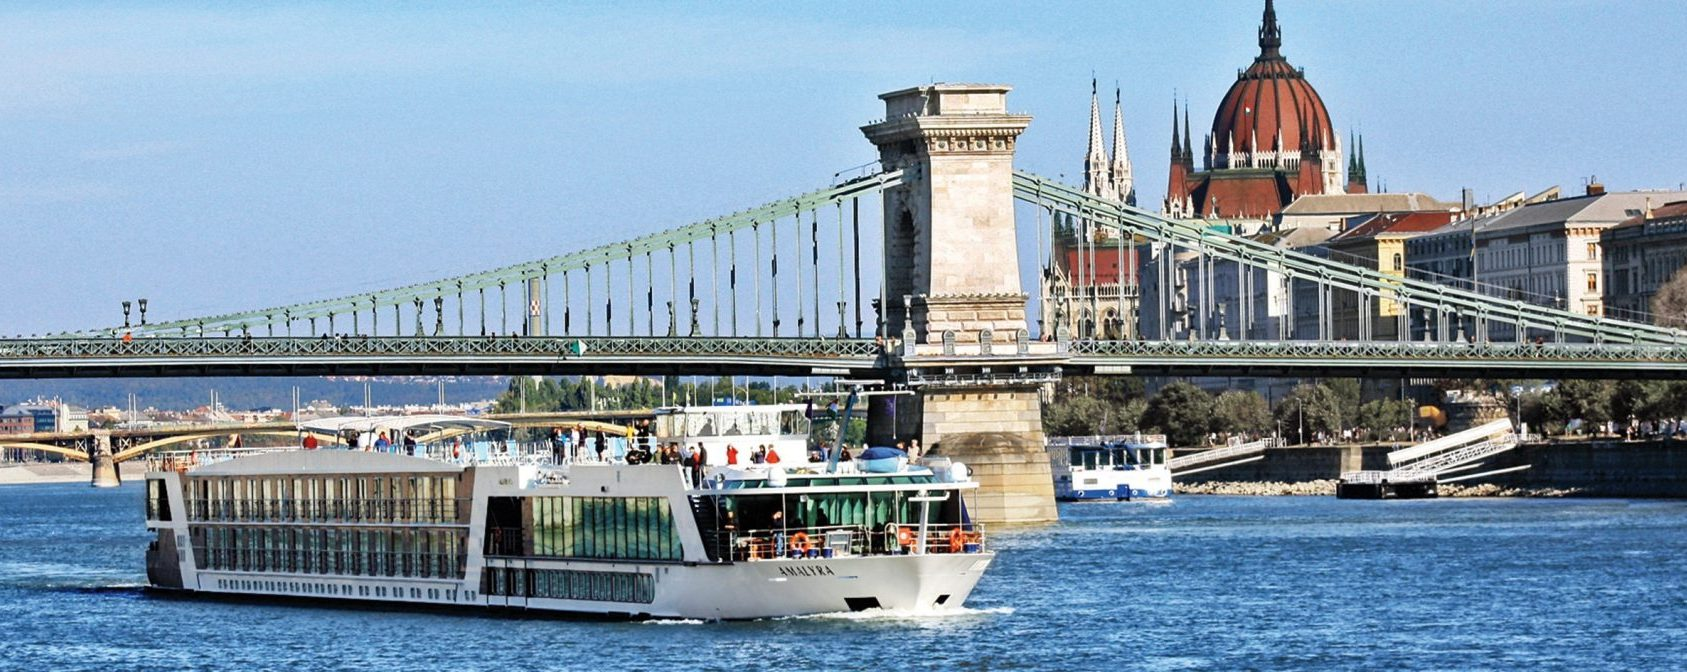 AmaWaterways AmaLyra